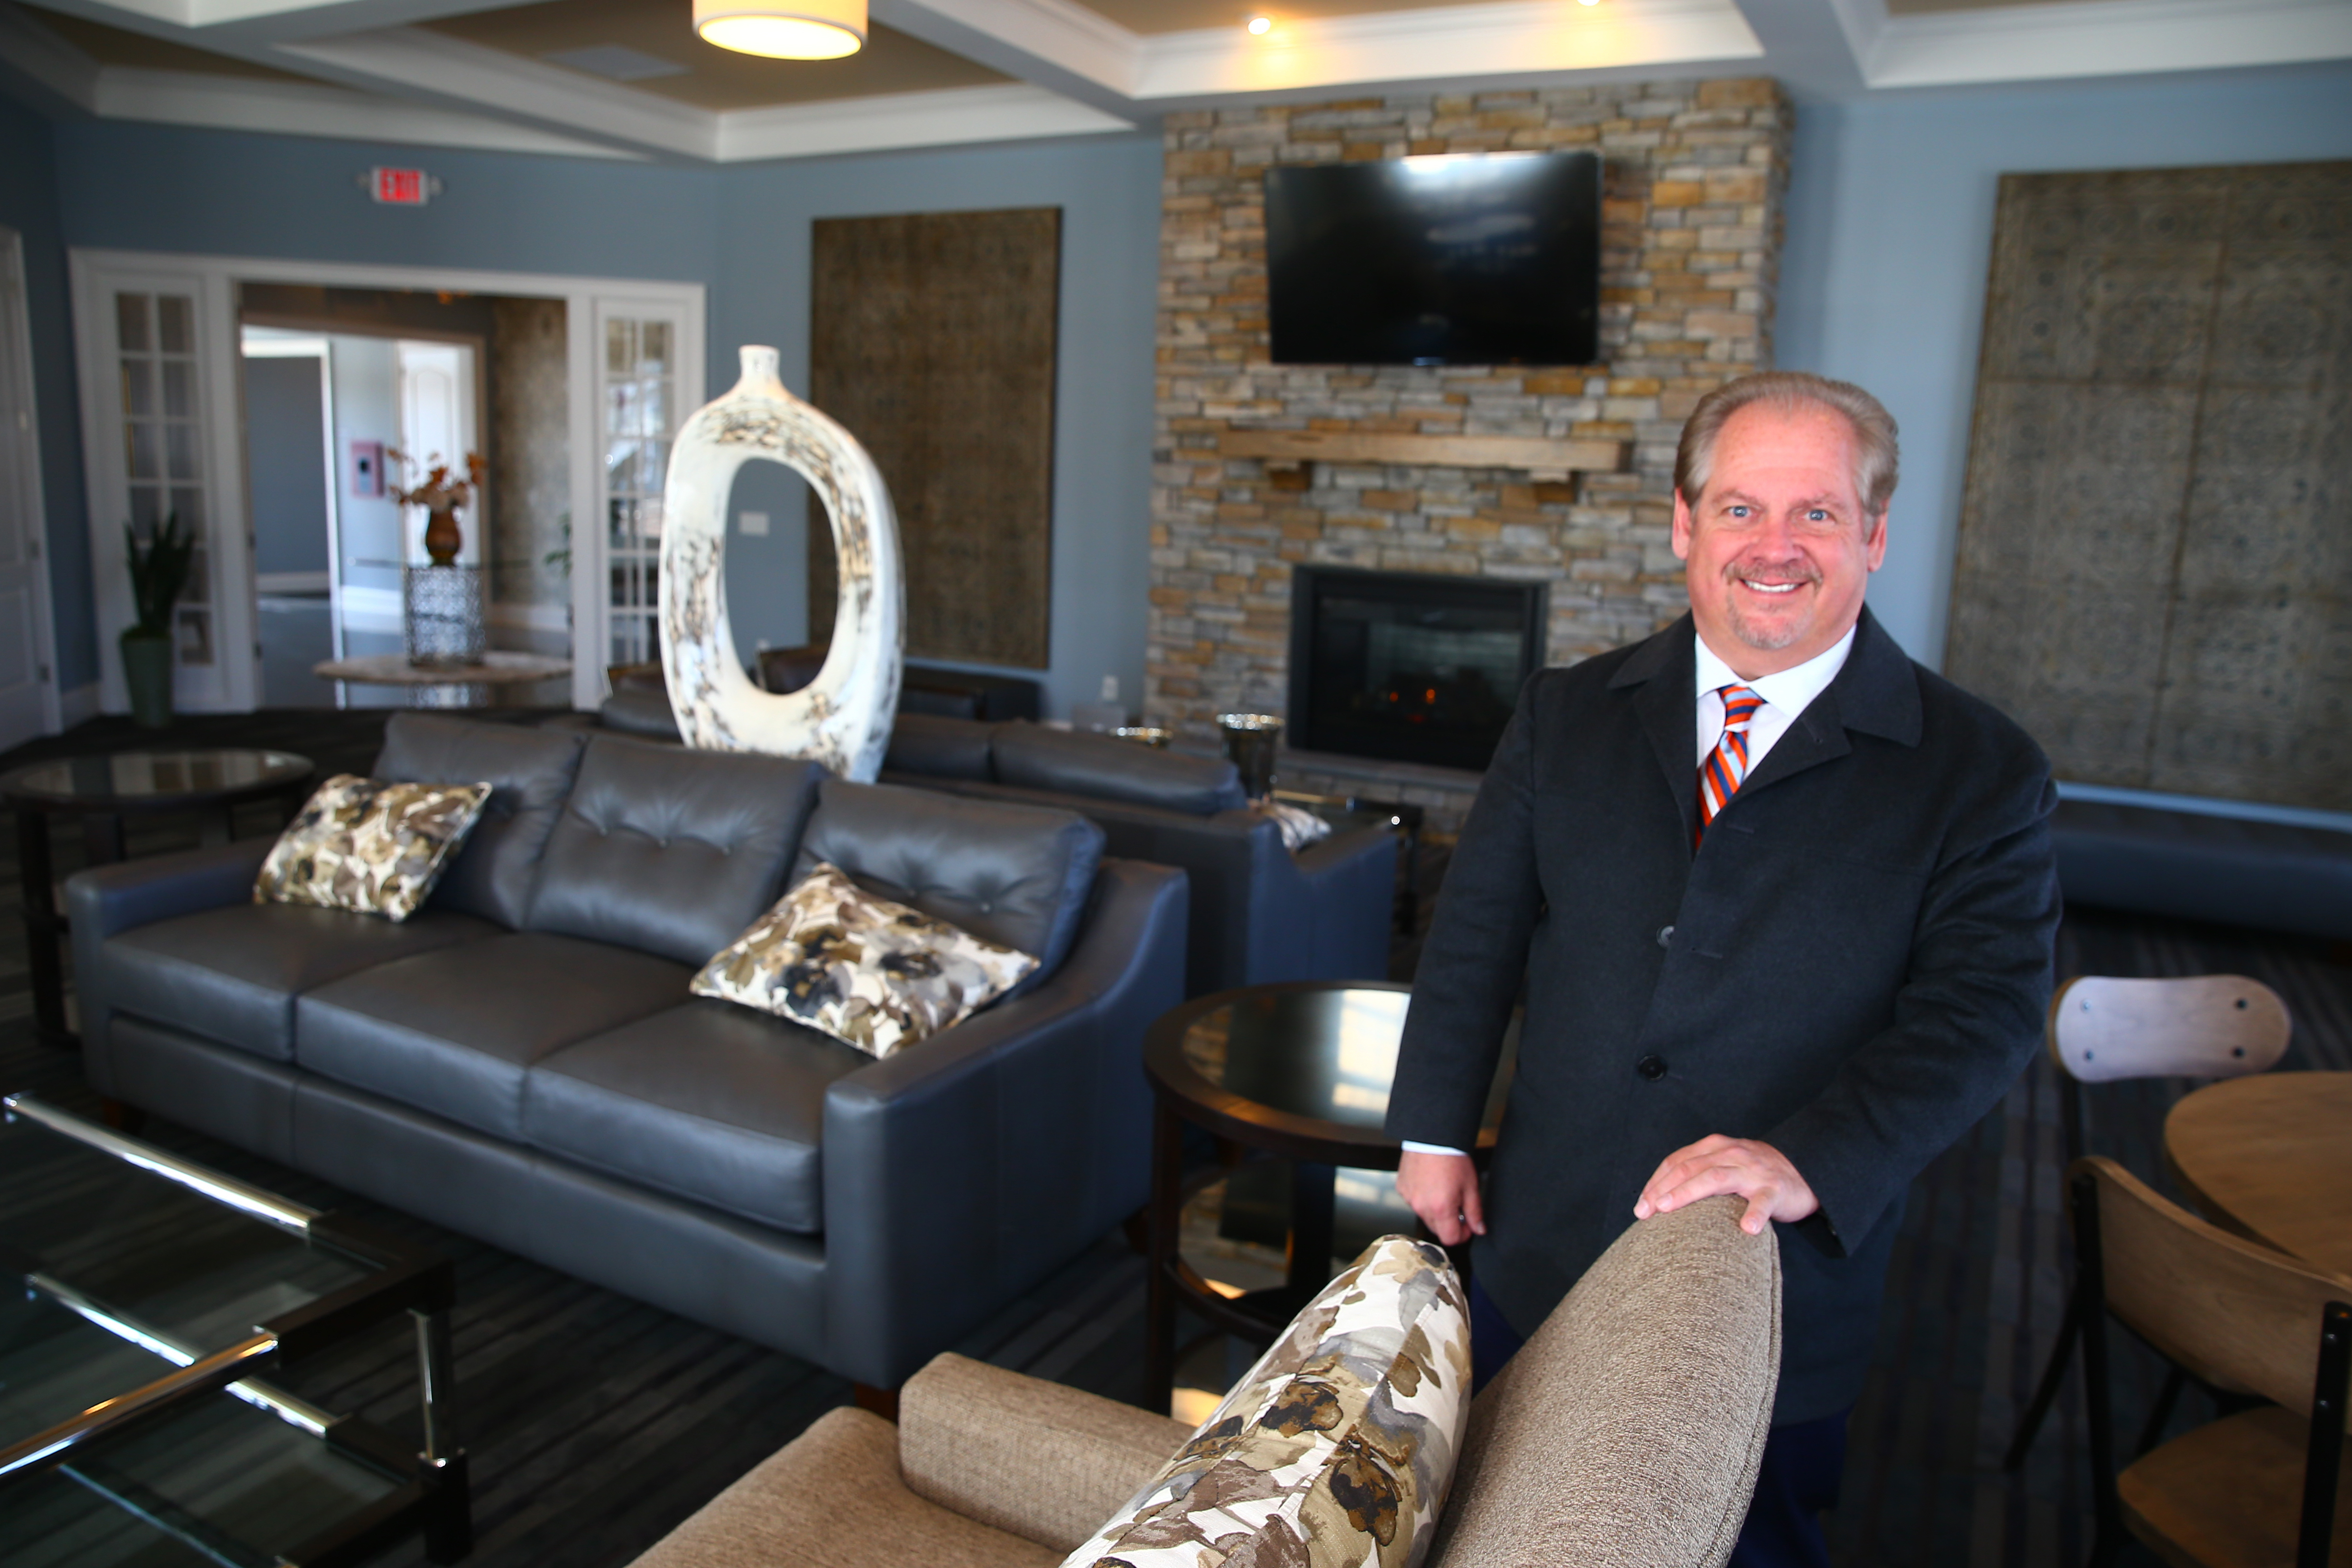 Anthony Cutaia, president of Rane Property Management, shows off the clubhouse at the company's Heron Pointe apartment complex on Grand Island on Thursday,  March 23, 2017. Rane markets many of its Buffalo area apartments and townhomes to millennials. (John Hickey/Buffalo News)